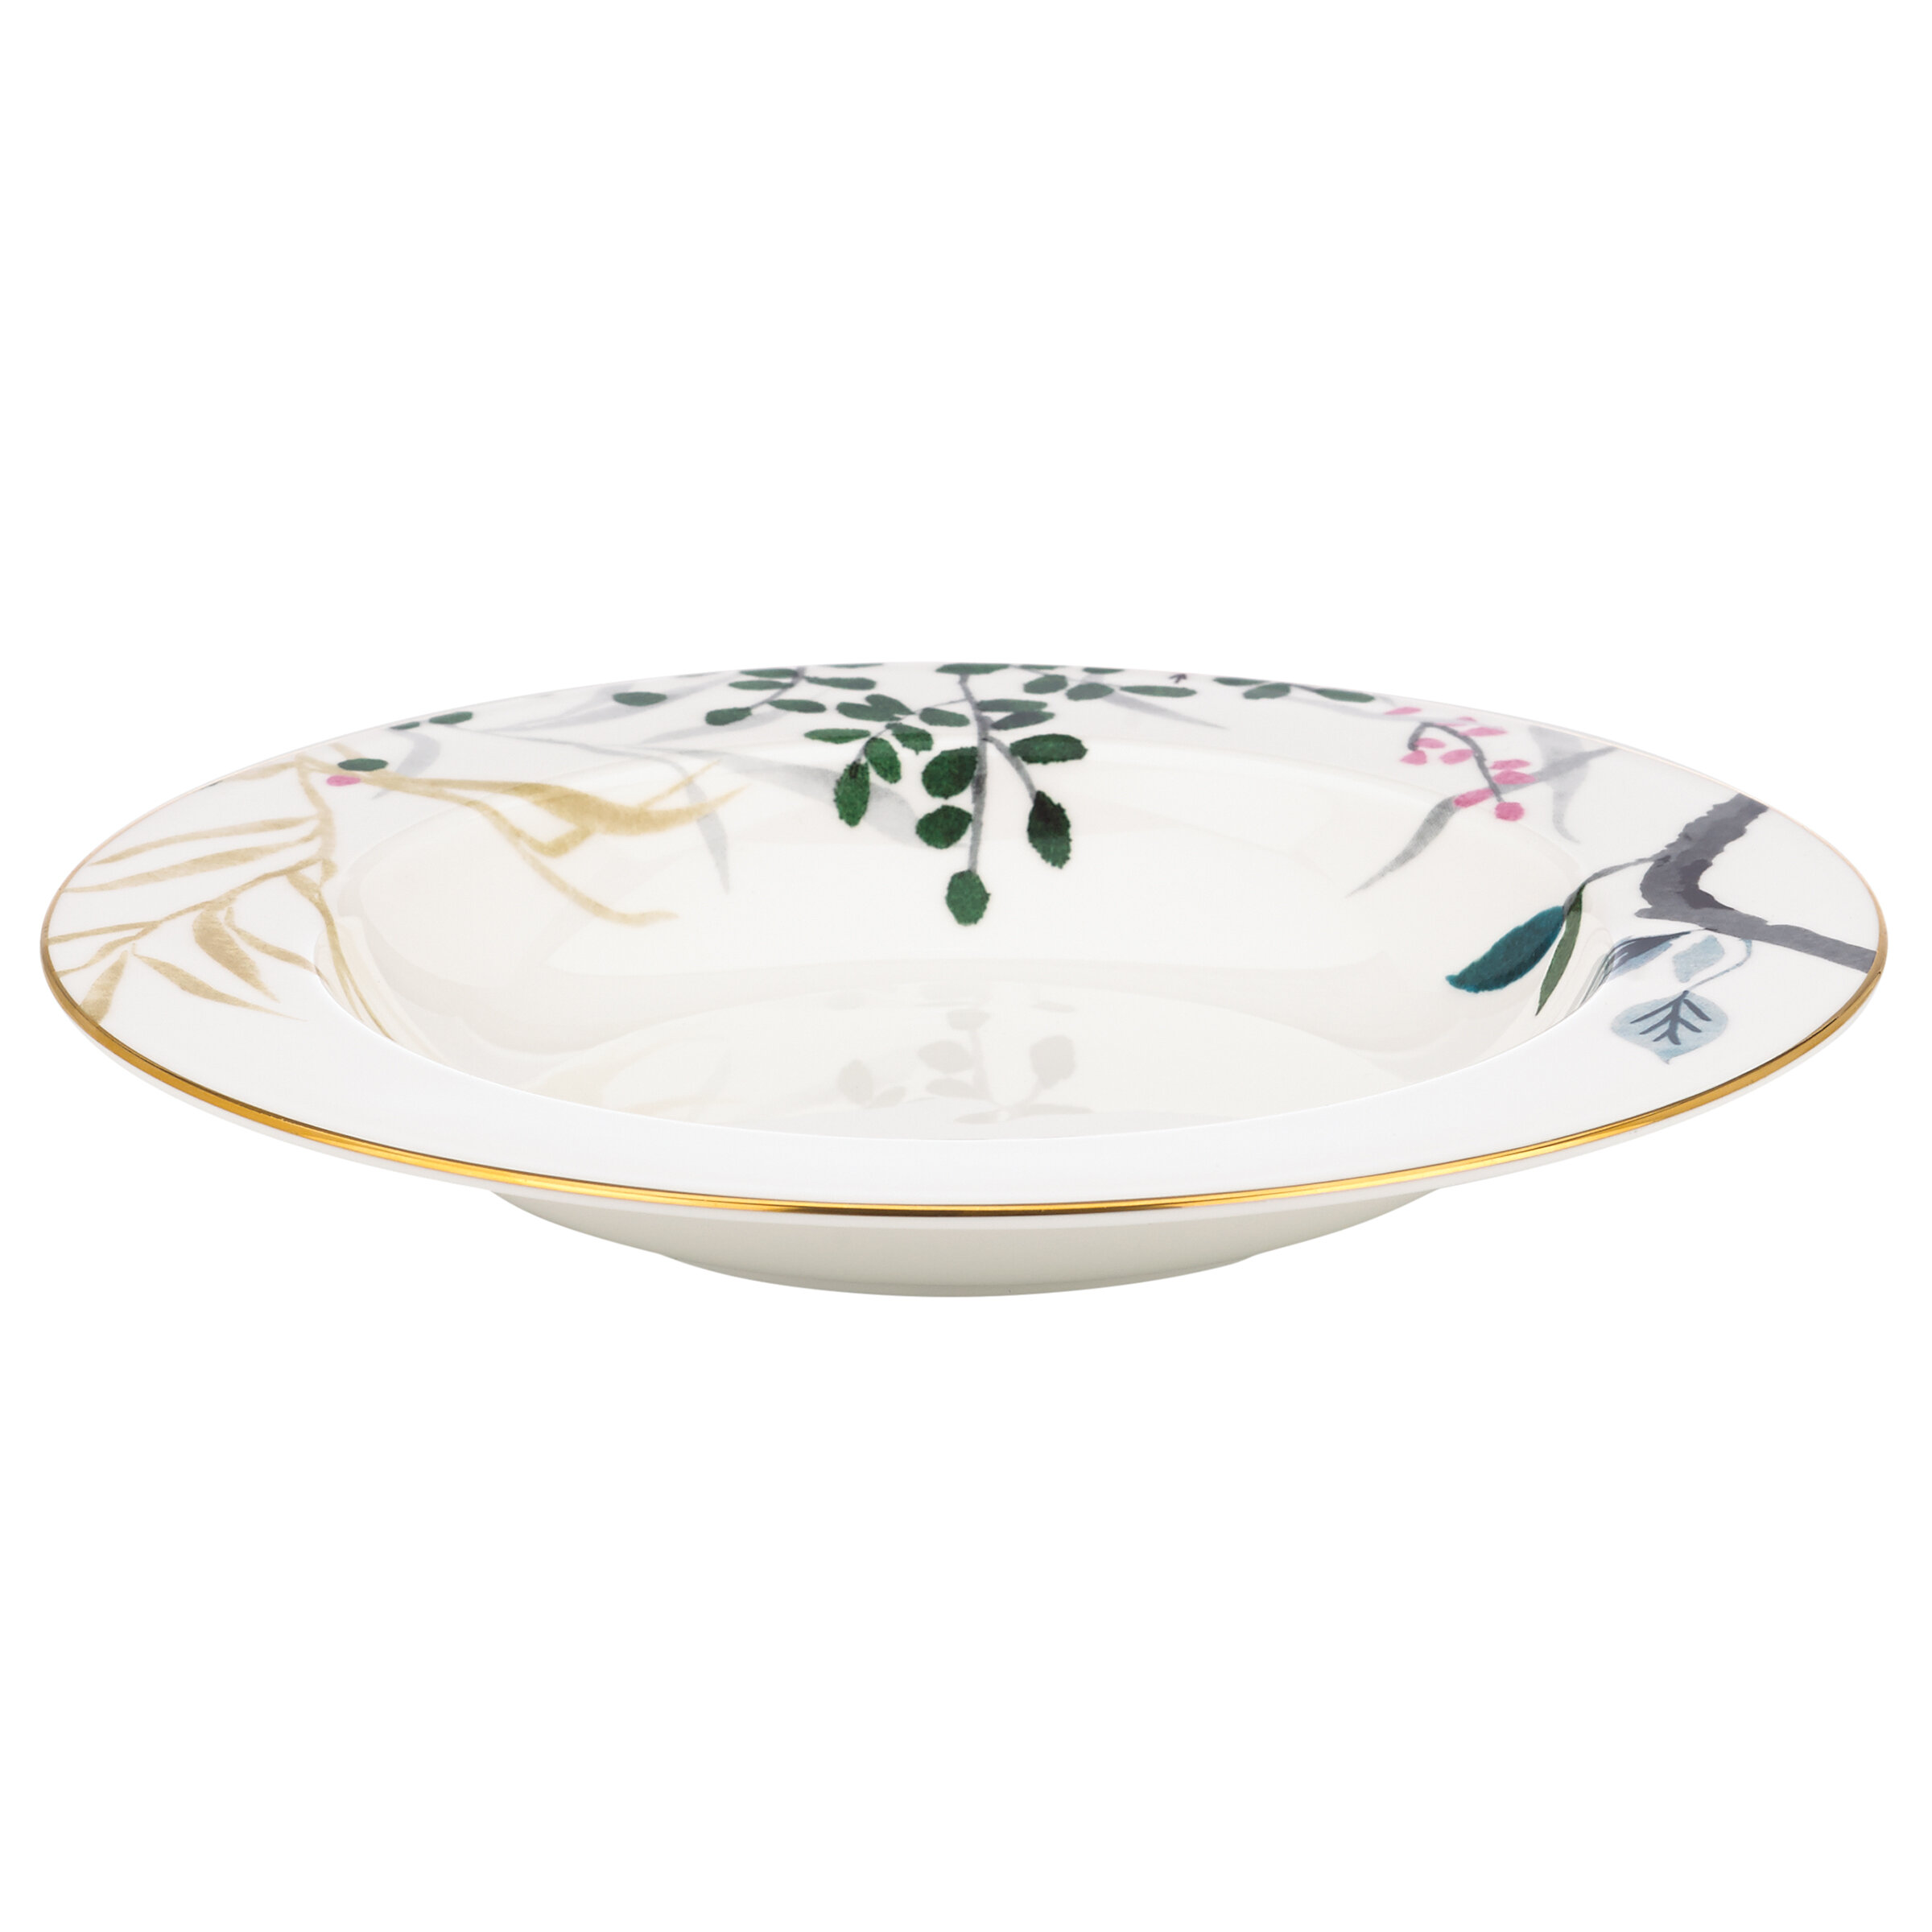 Kate Spade New York Birchway Pasta Bowl Wayfair